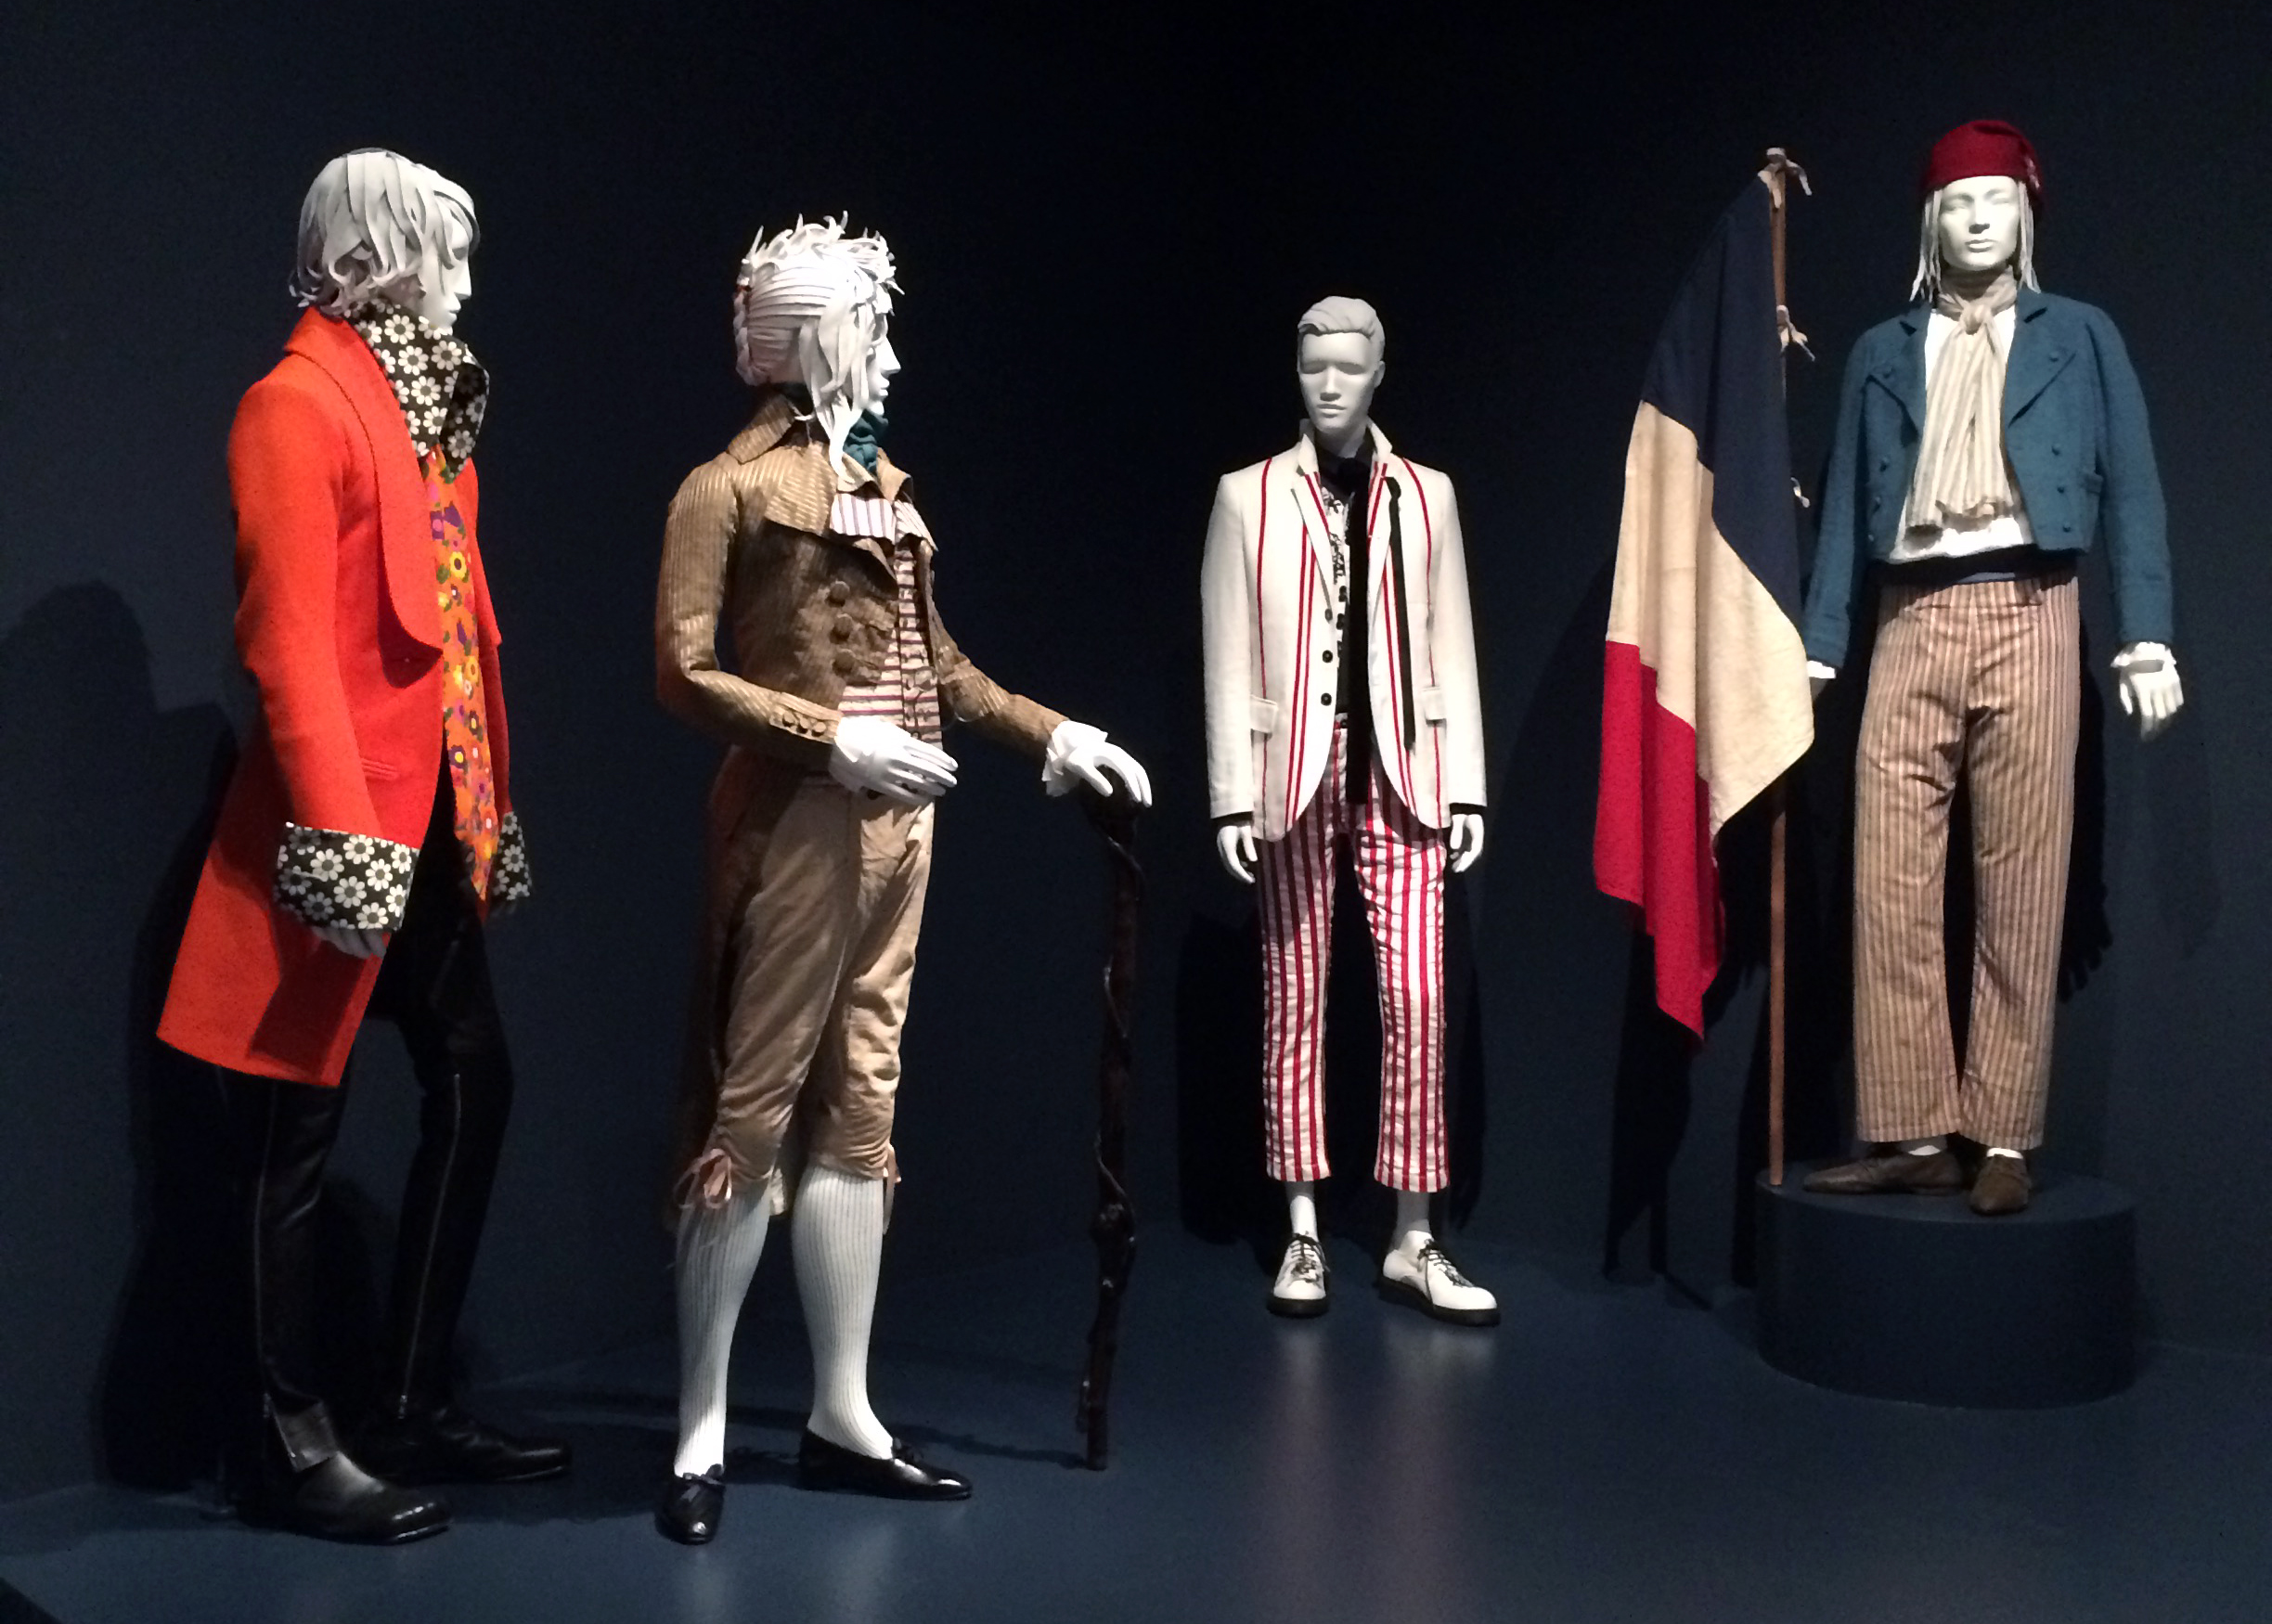 Reigning Men Exhibition, Los Angeles County Museum of Art